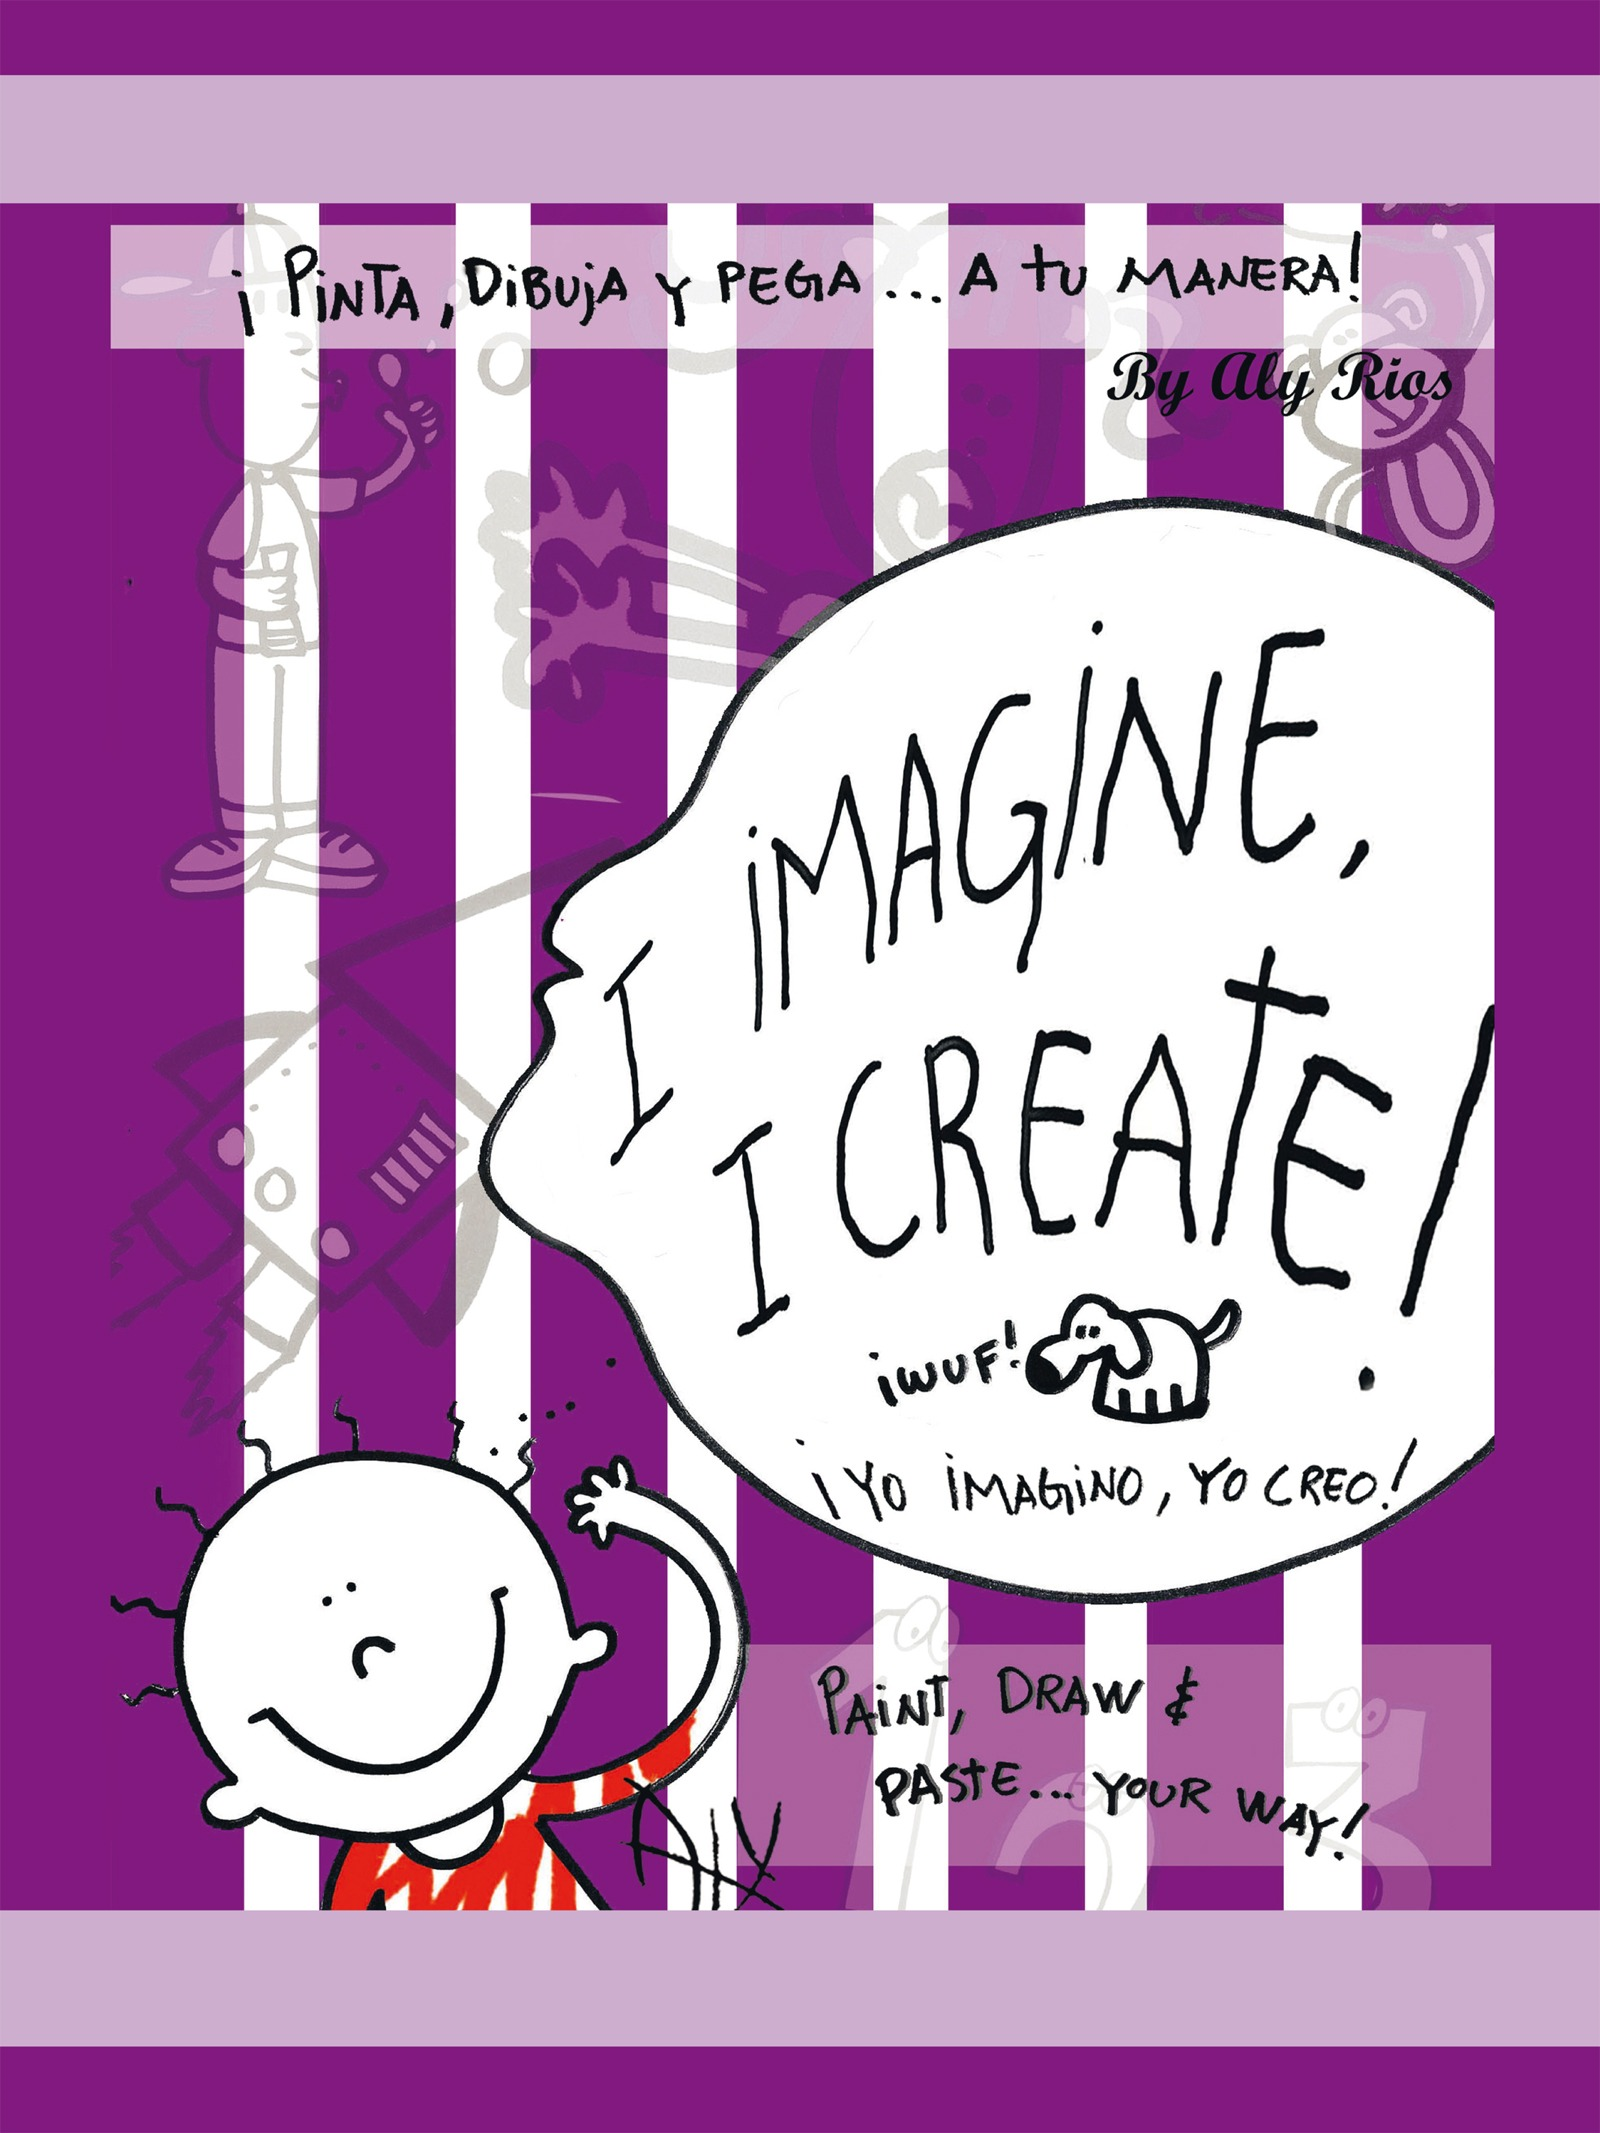 I imagine, I create